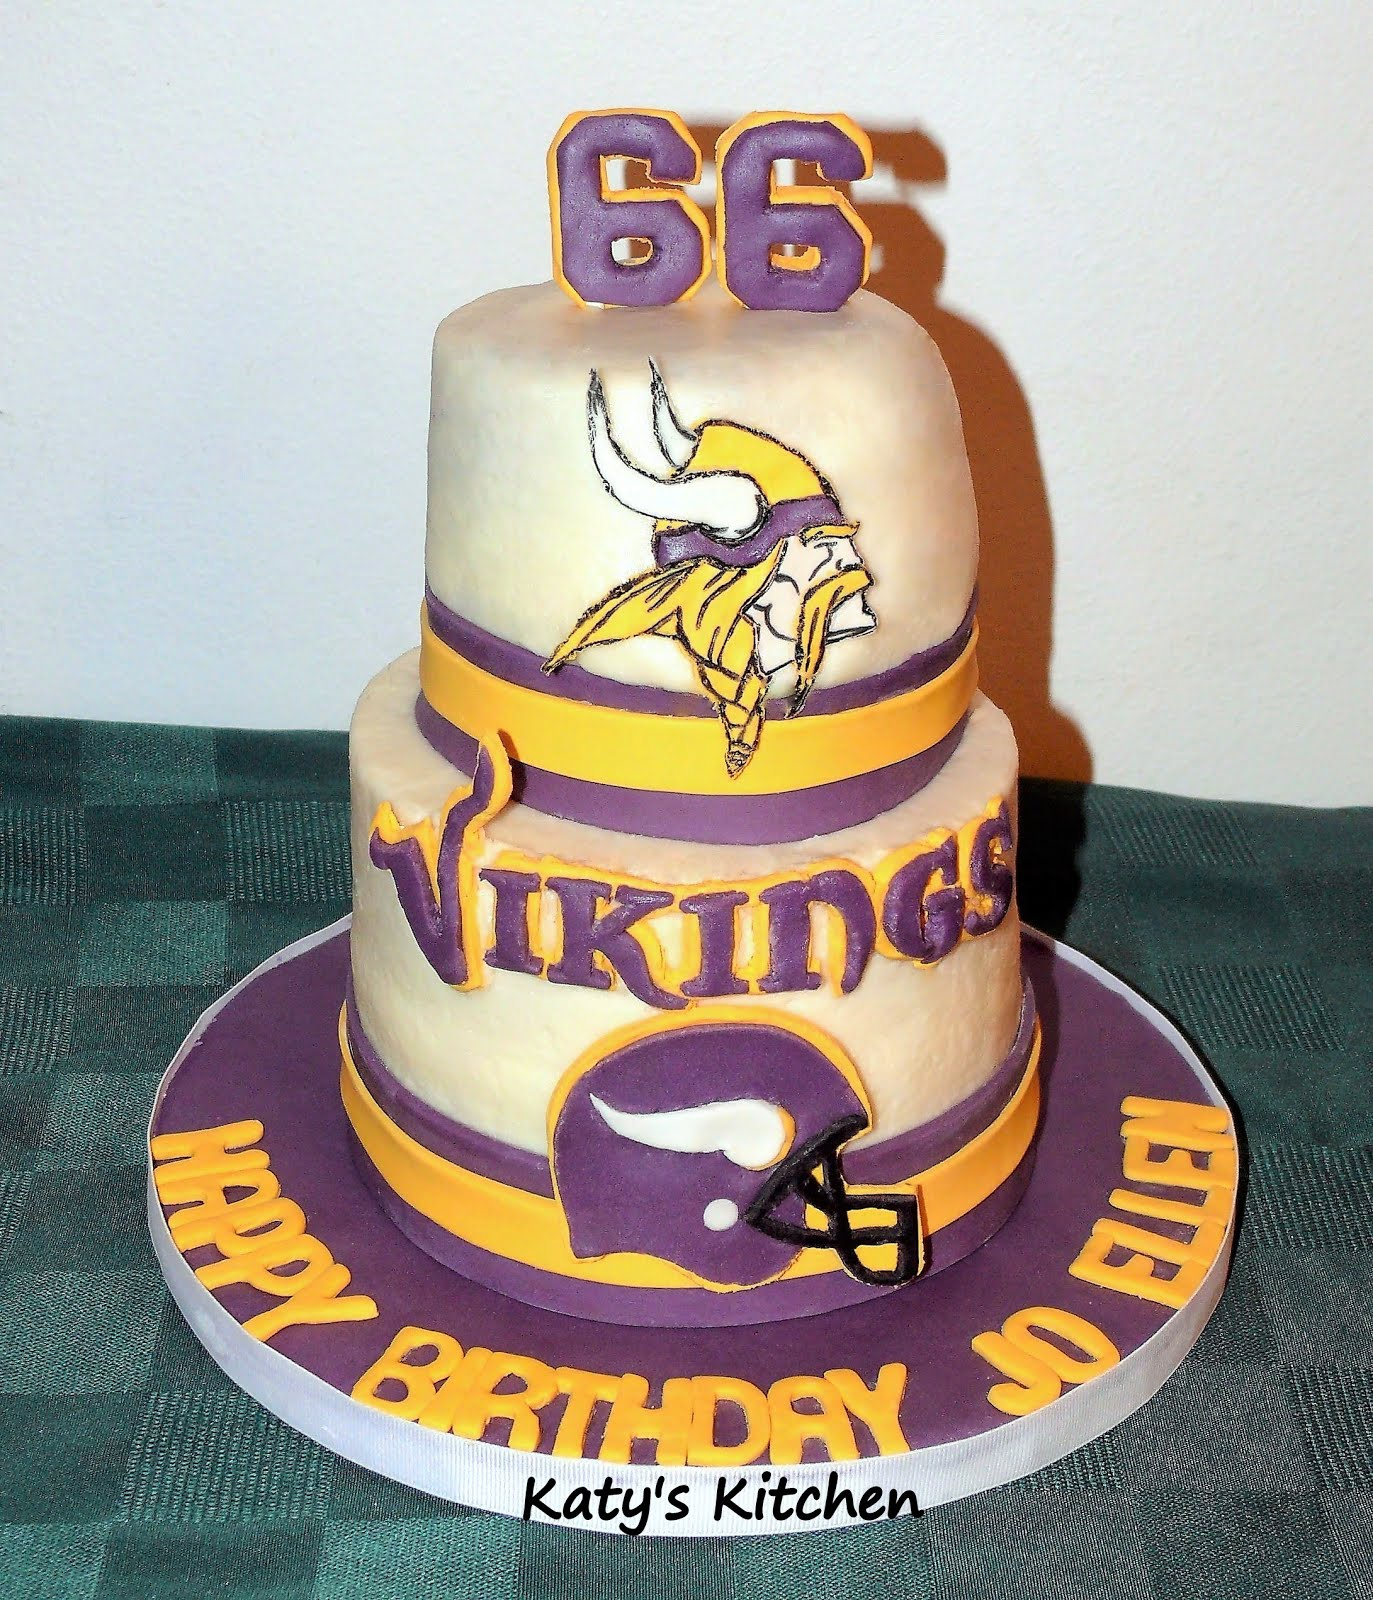 Sensational Katys Kitchen Minnesota Vikings Cake Funny Birthday Cards Online Elaedamsfinfo